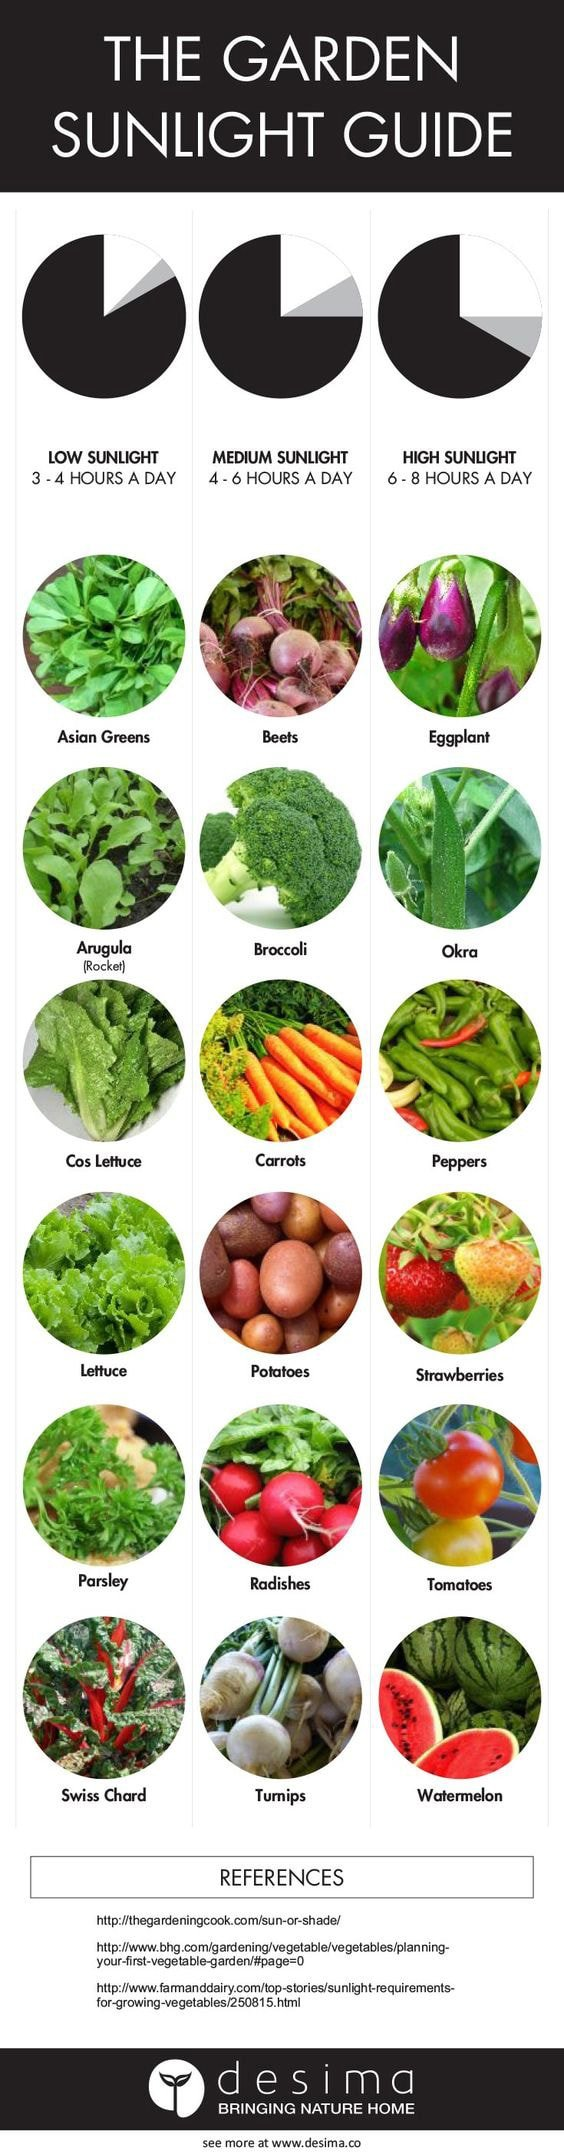 Kids Vegetable garden Sunshine Guide